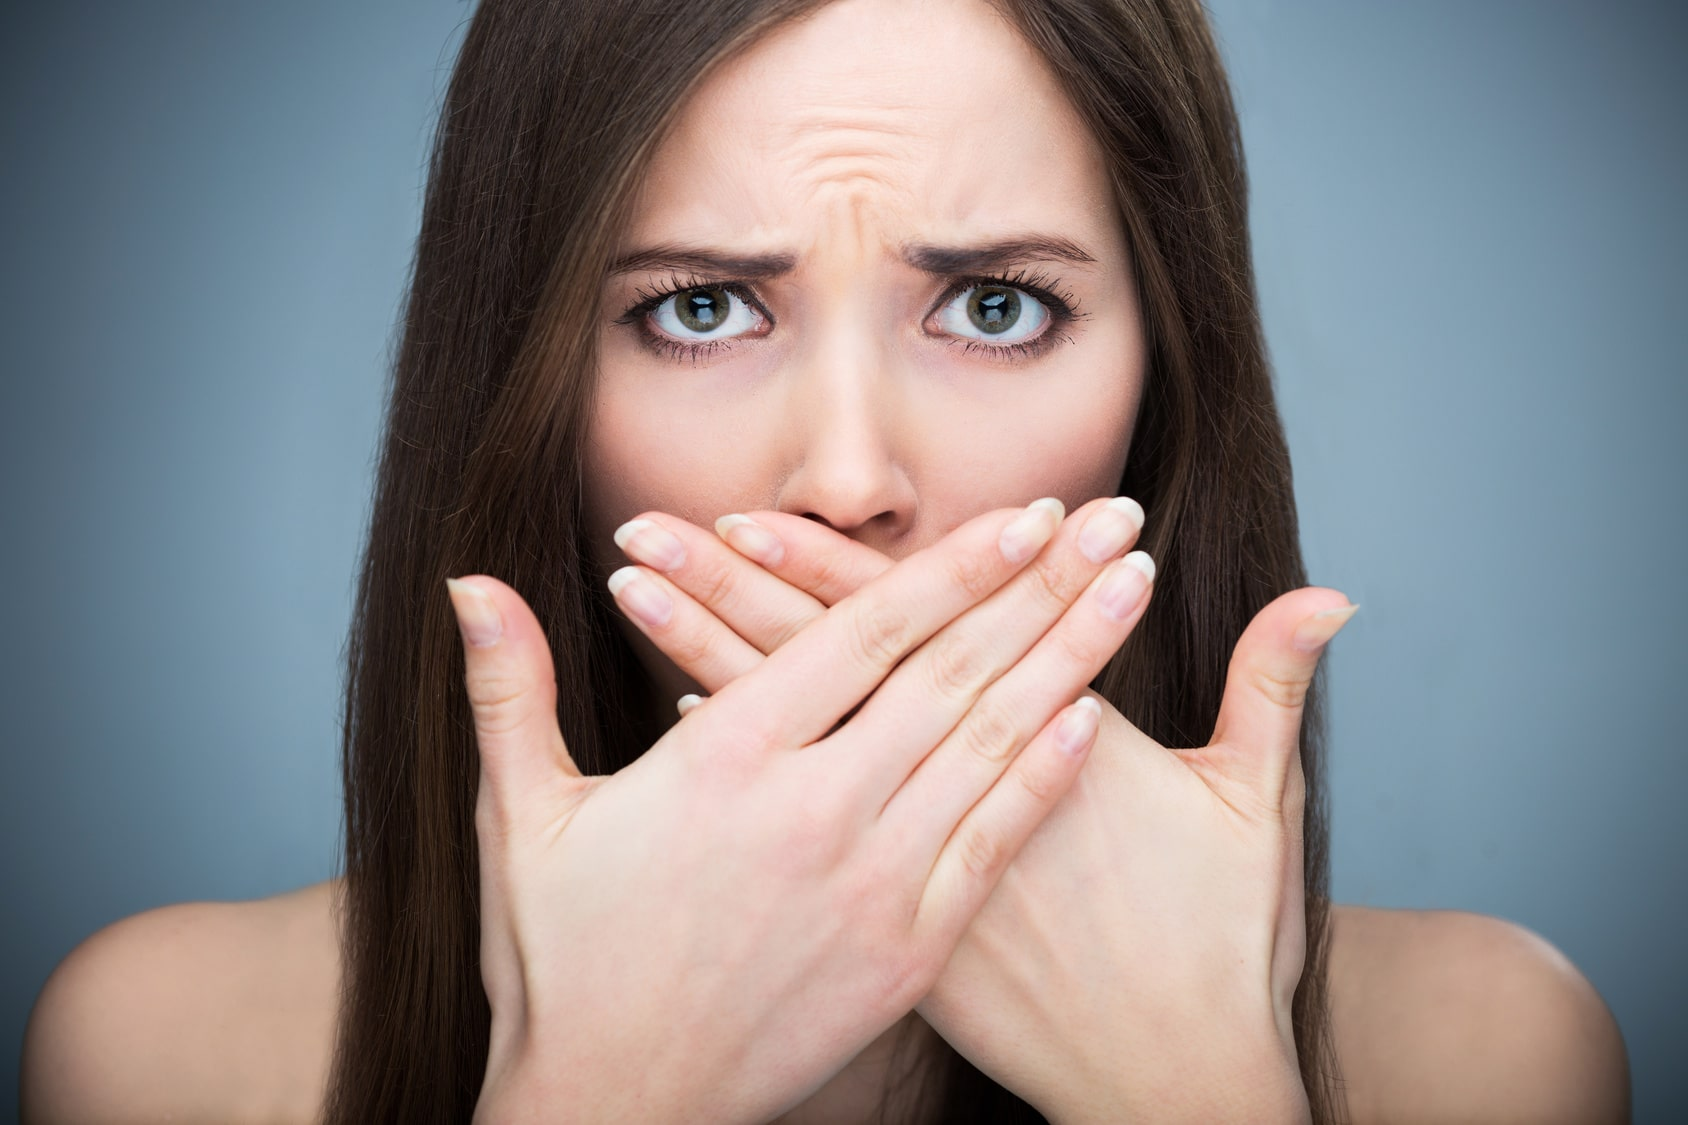 Root canal therapy can relieve the pain of an infected tooth